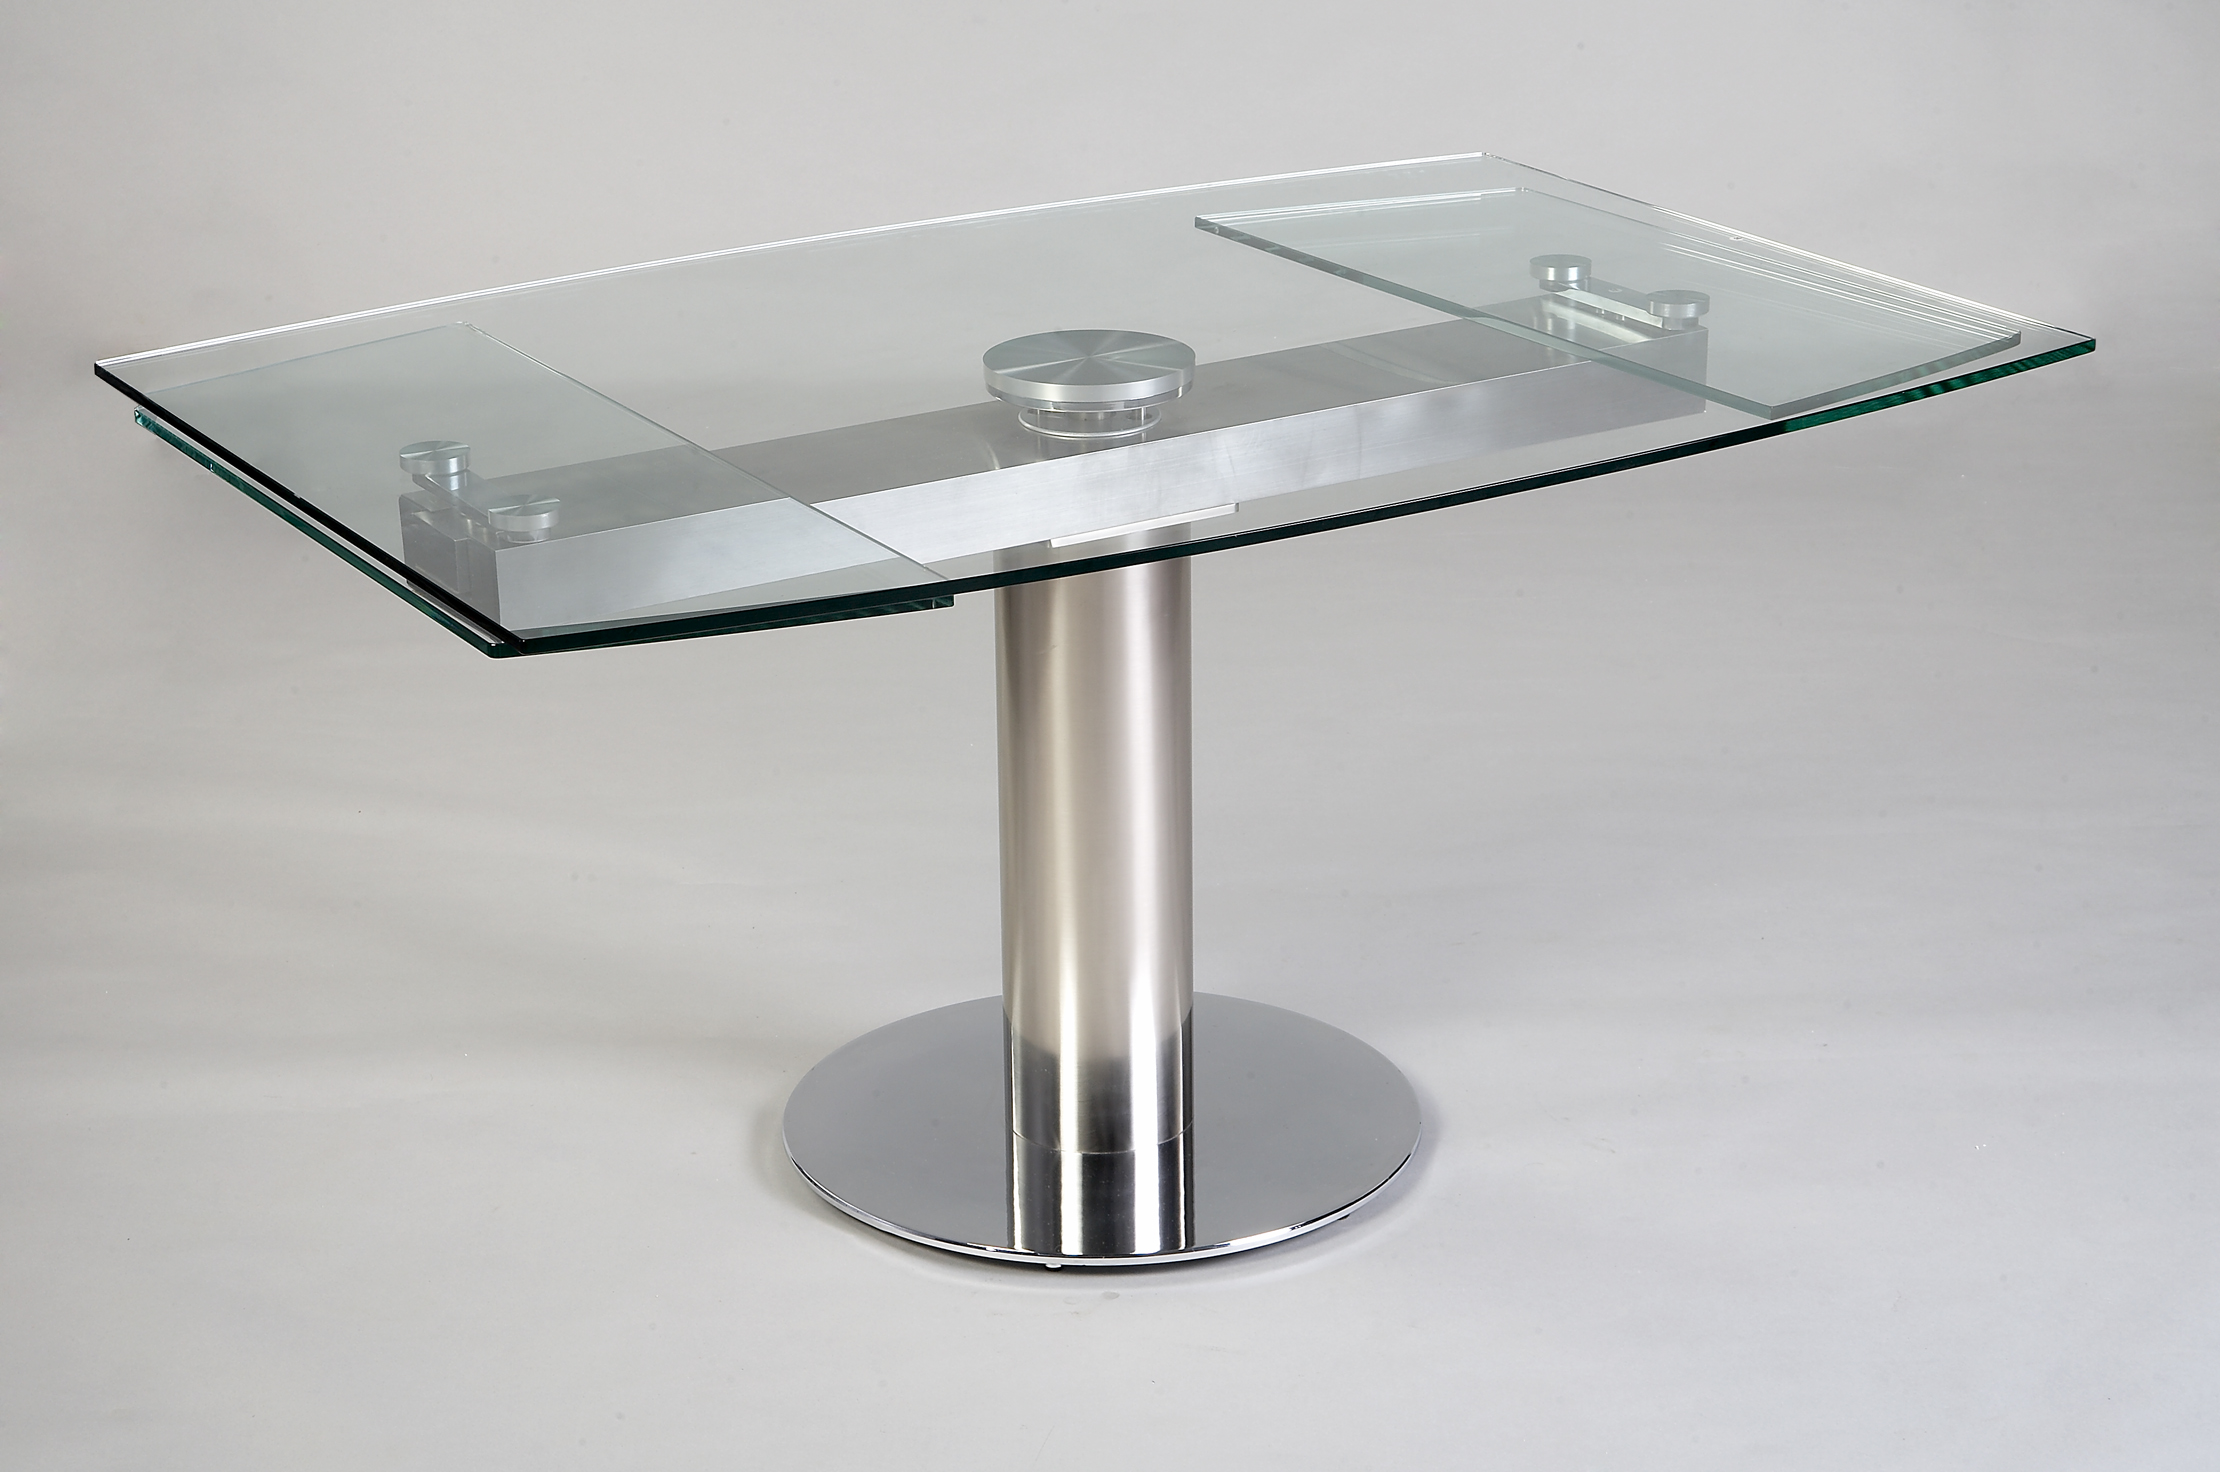 Table salle a manger verre extensible valdiz for Table de television en verre